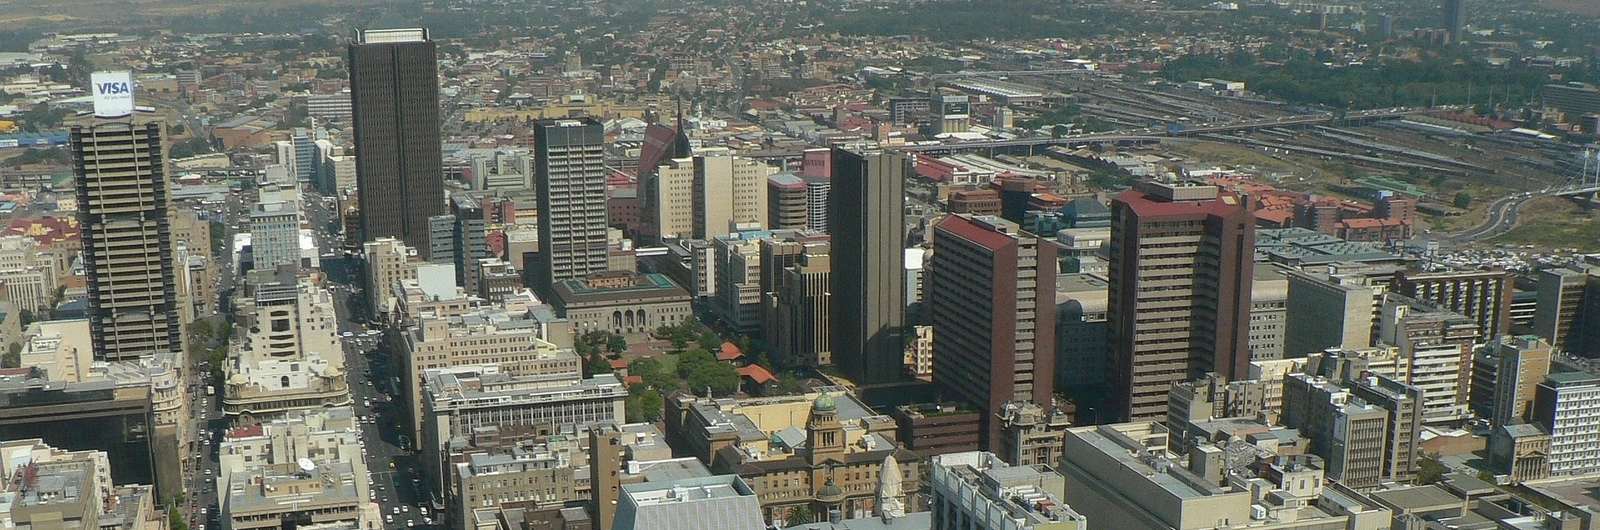 johannesburg city header